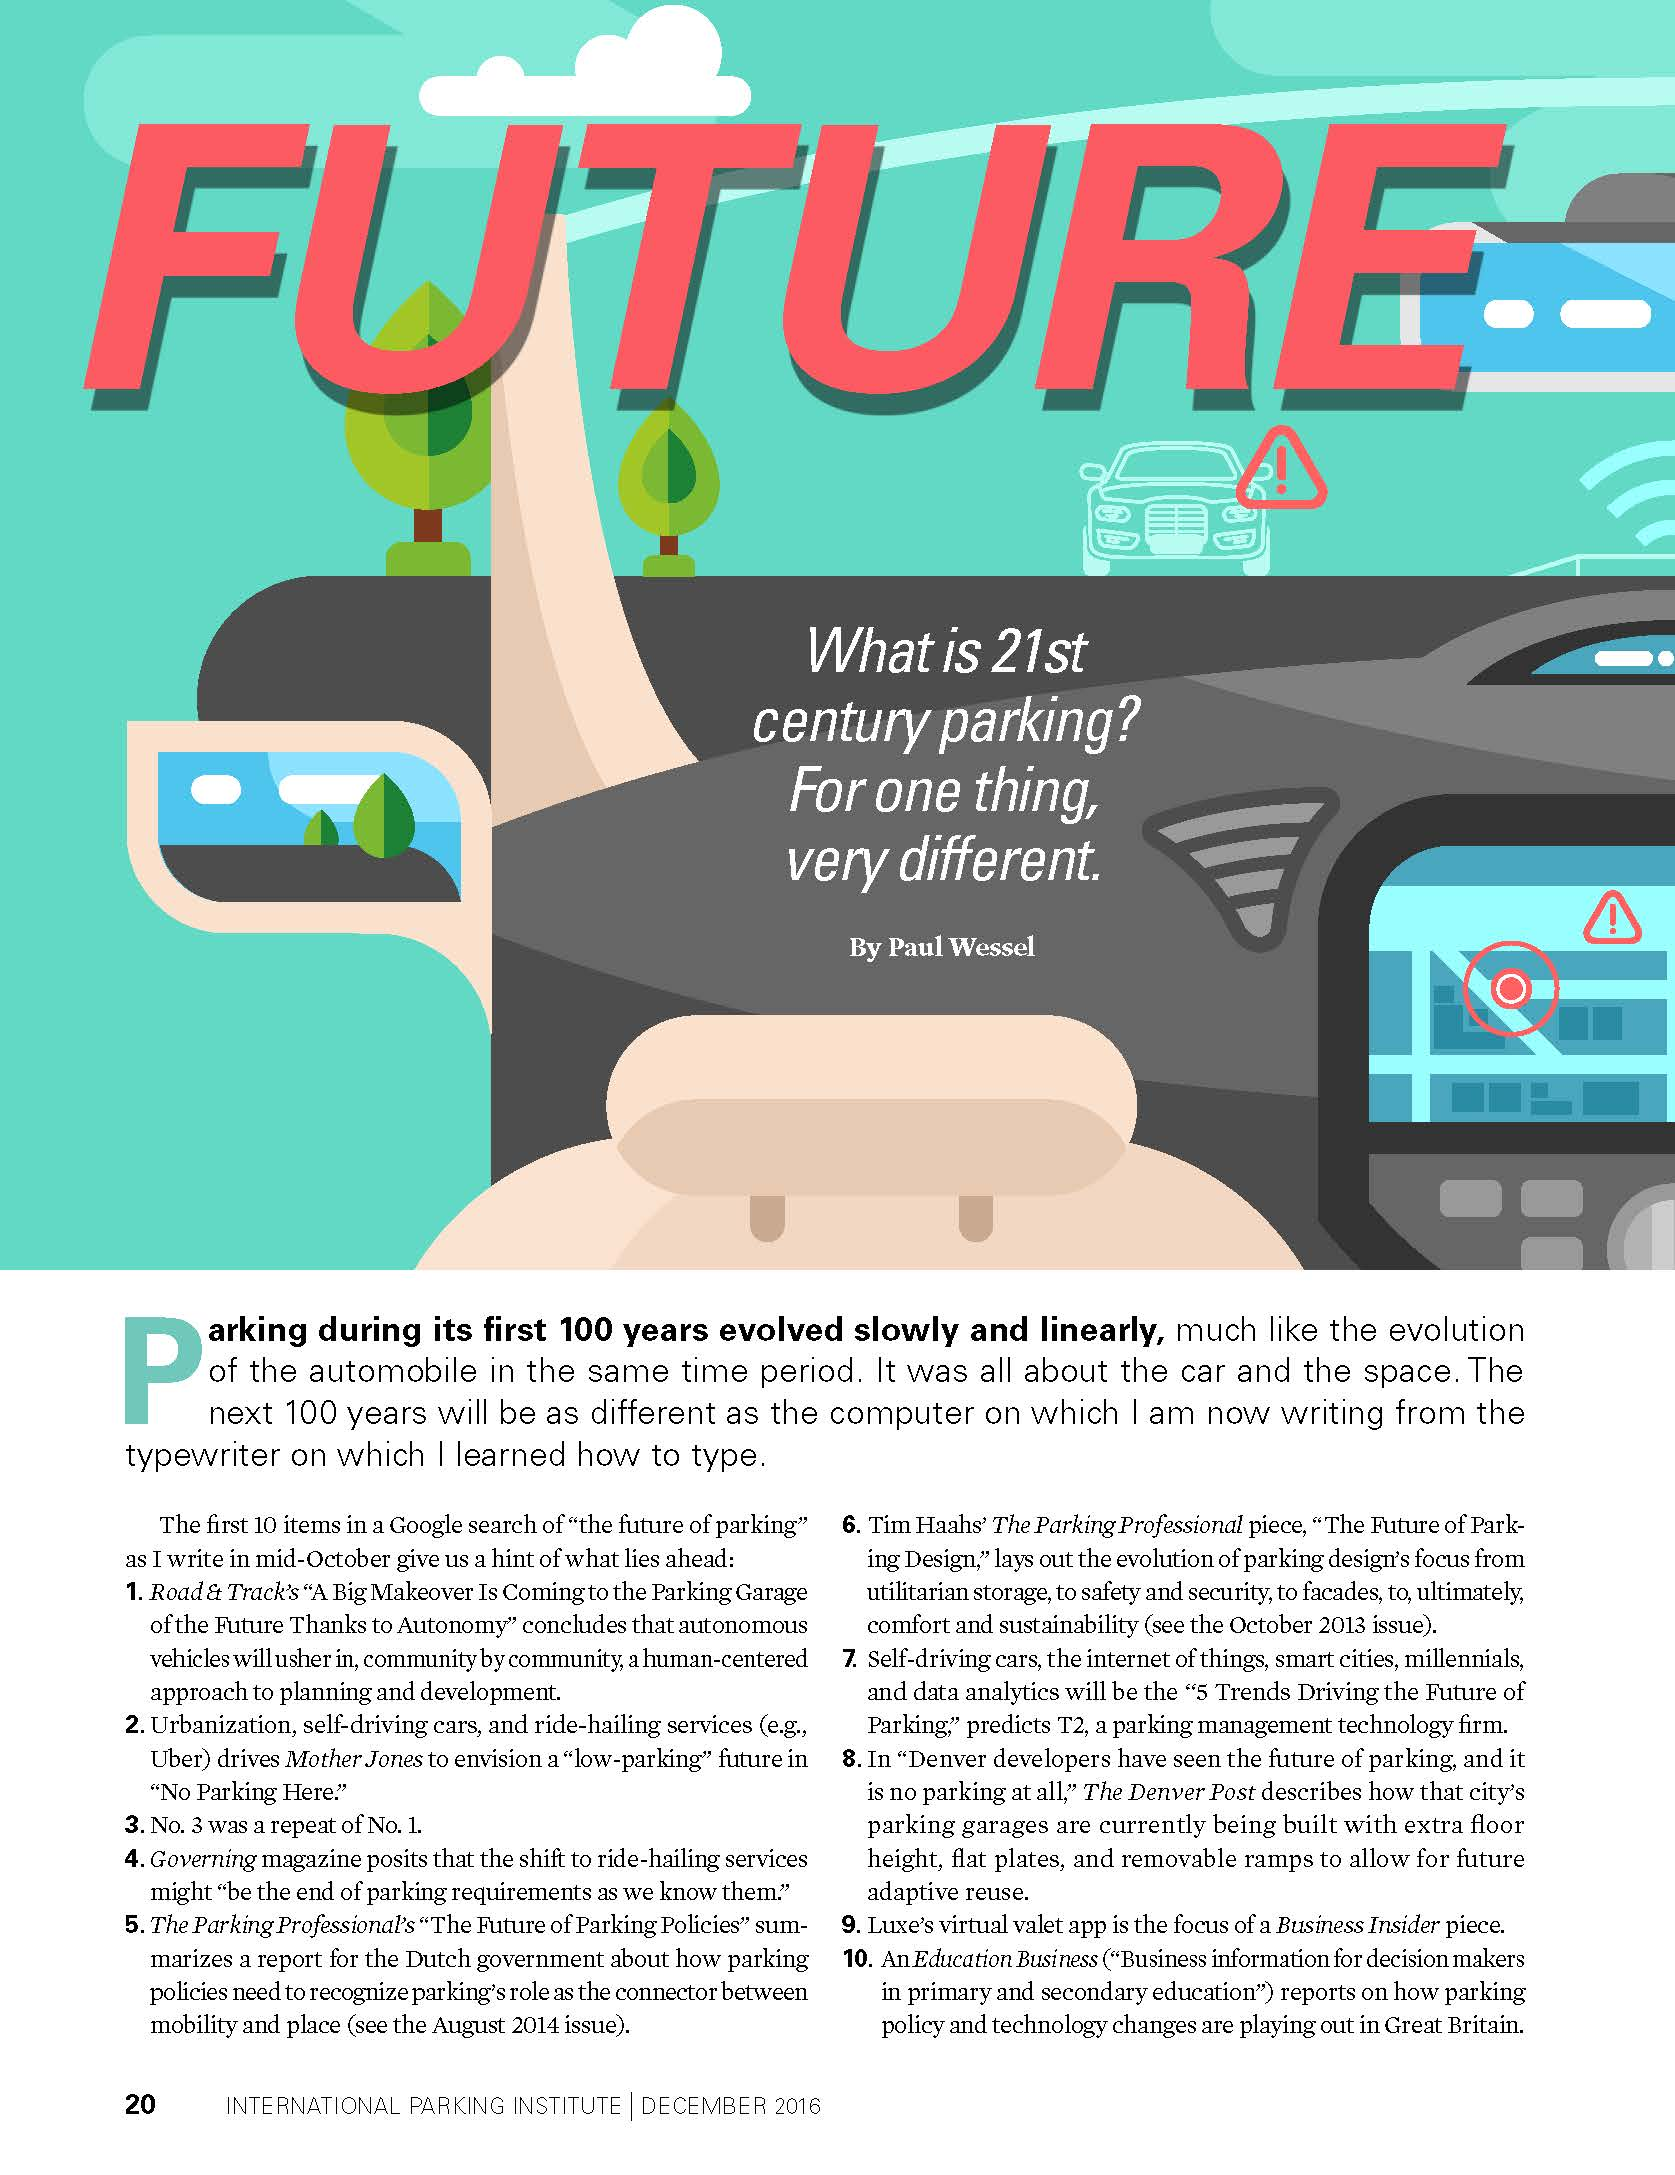 Future Vision Image to click to get to article